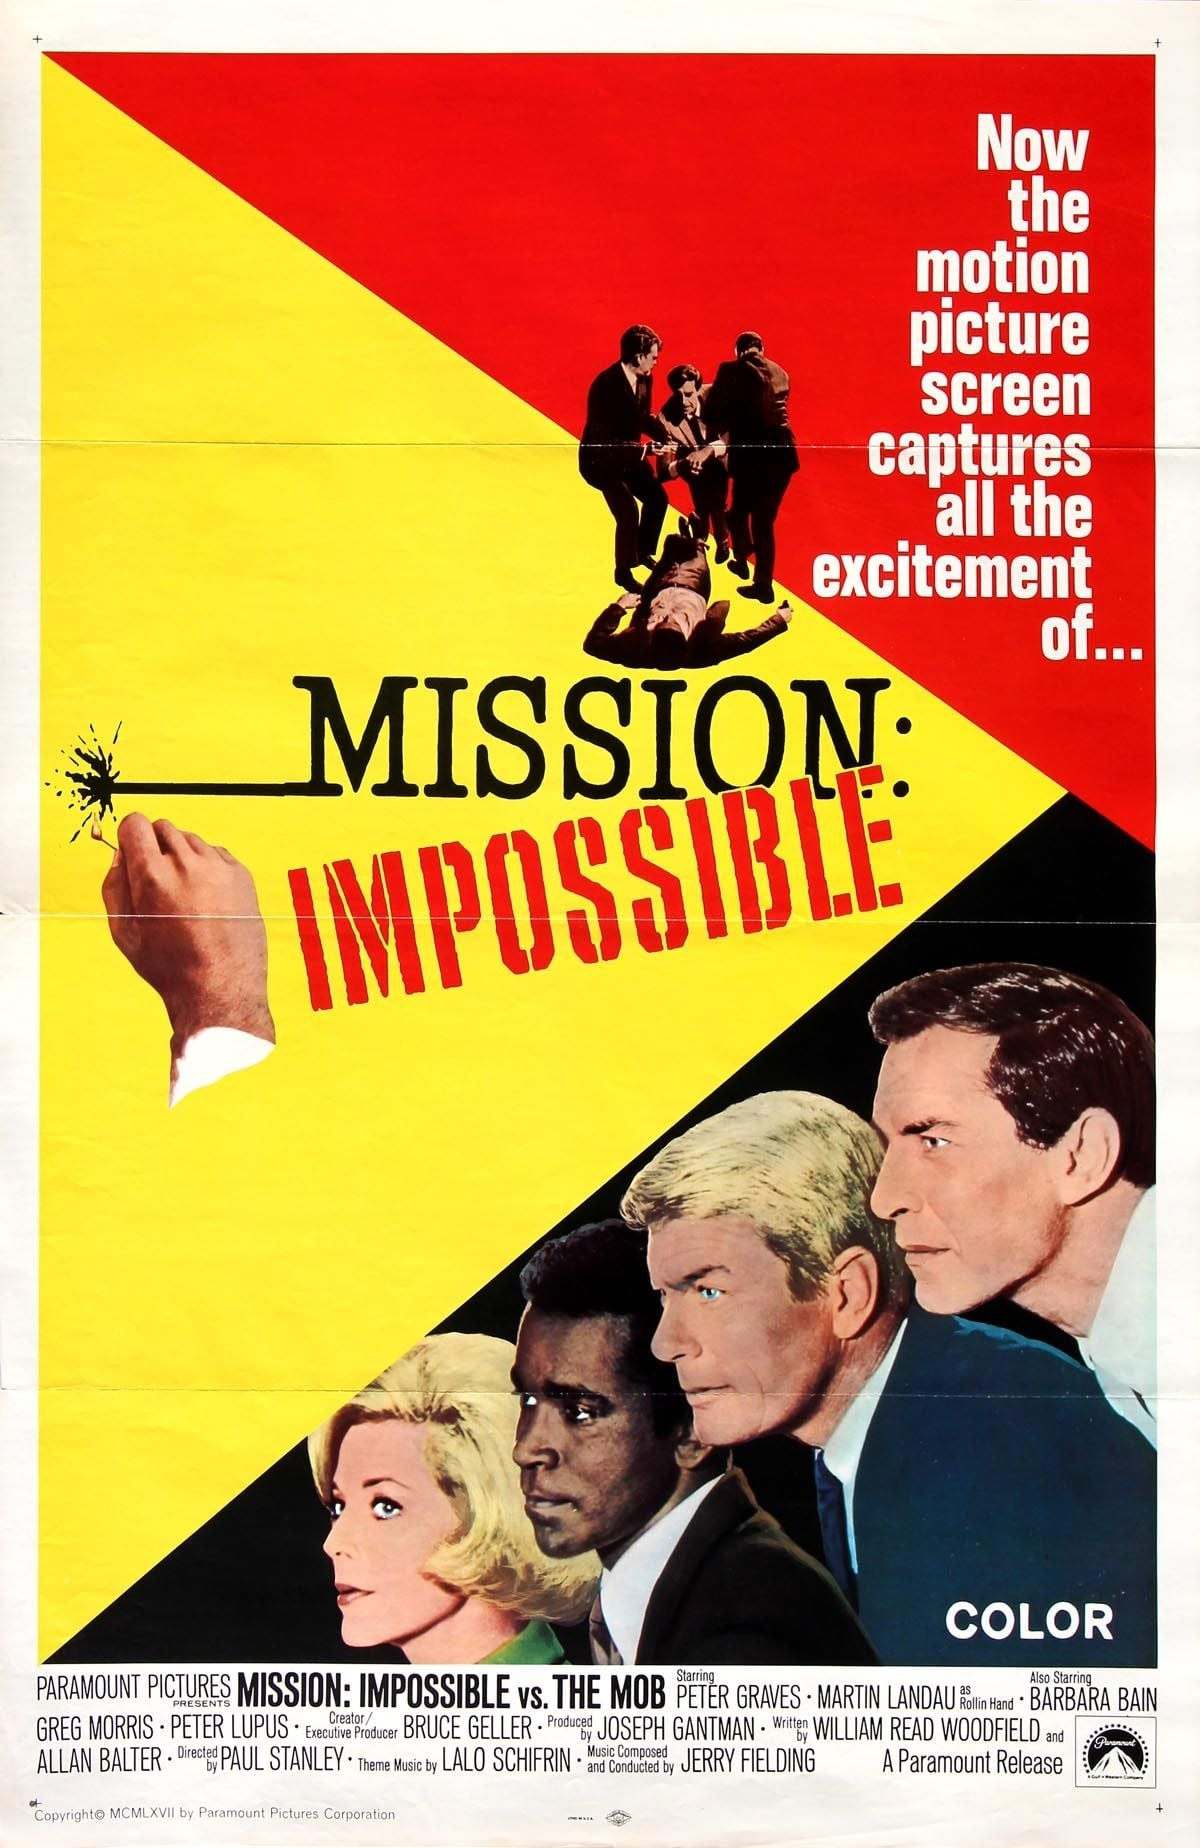 Mission: Impossible vs. the Mob (1969)